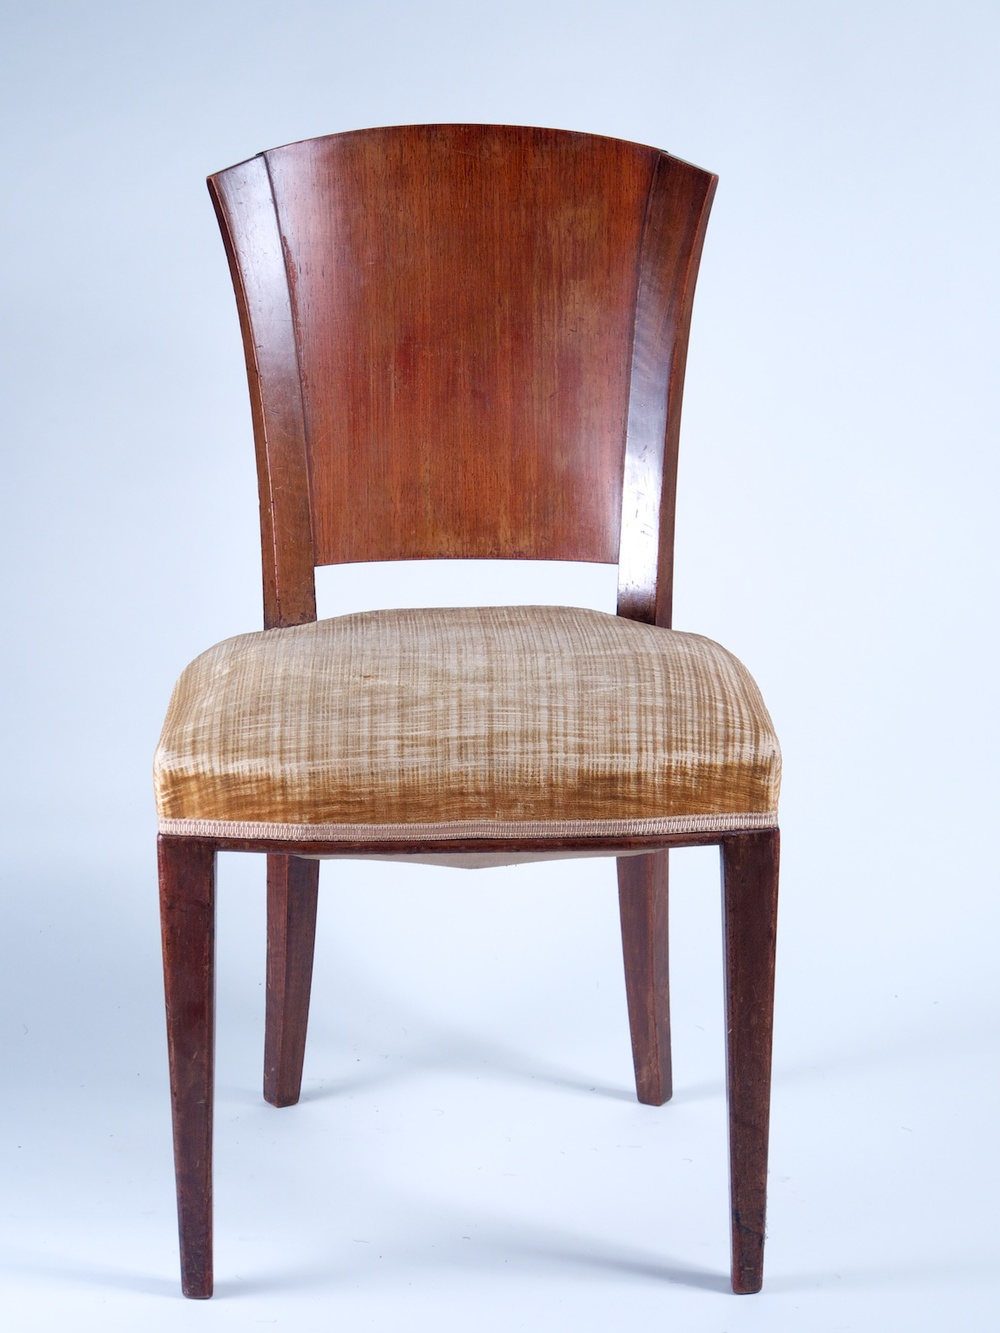 Etonnant Dominique Set Of 6 Rosewood And Walnut Dining Chairs (#1173)